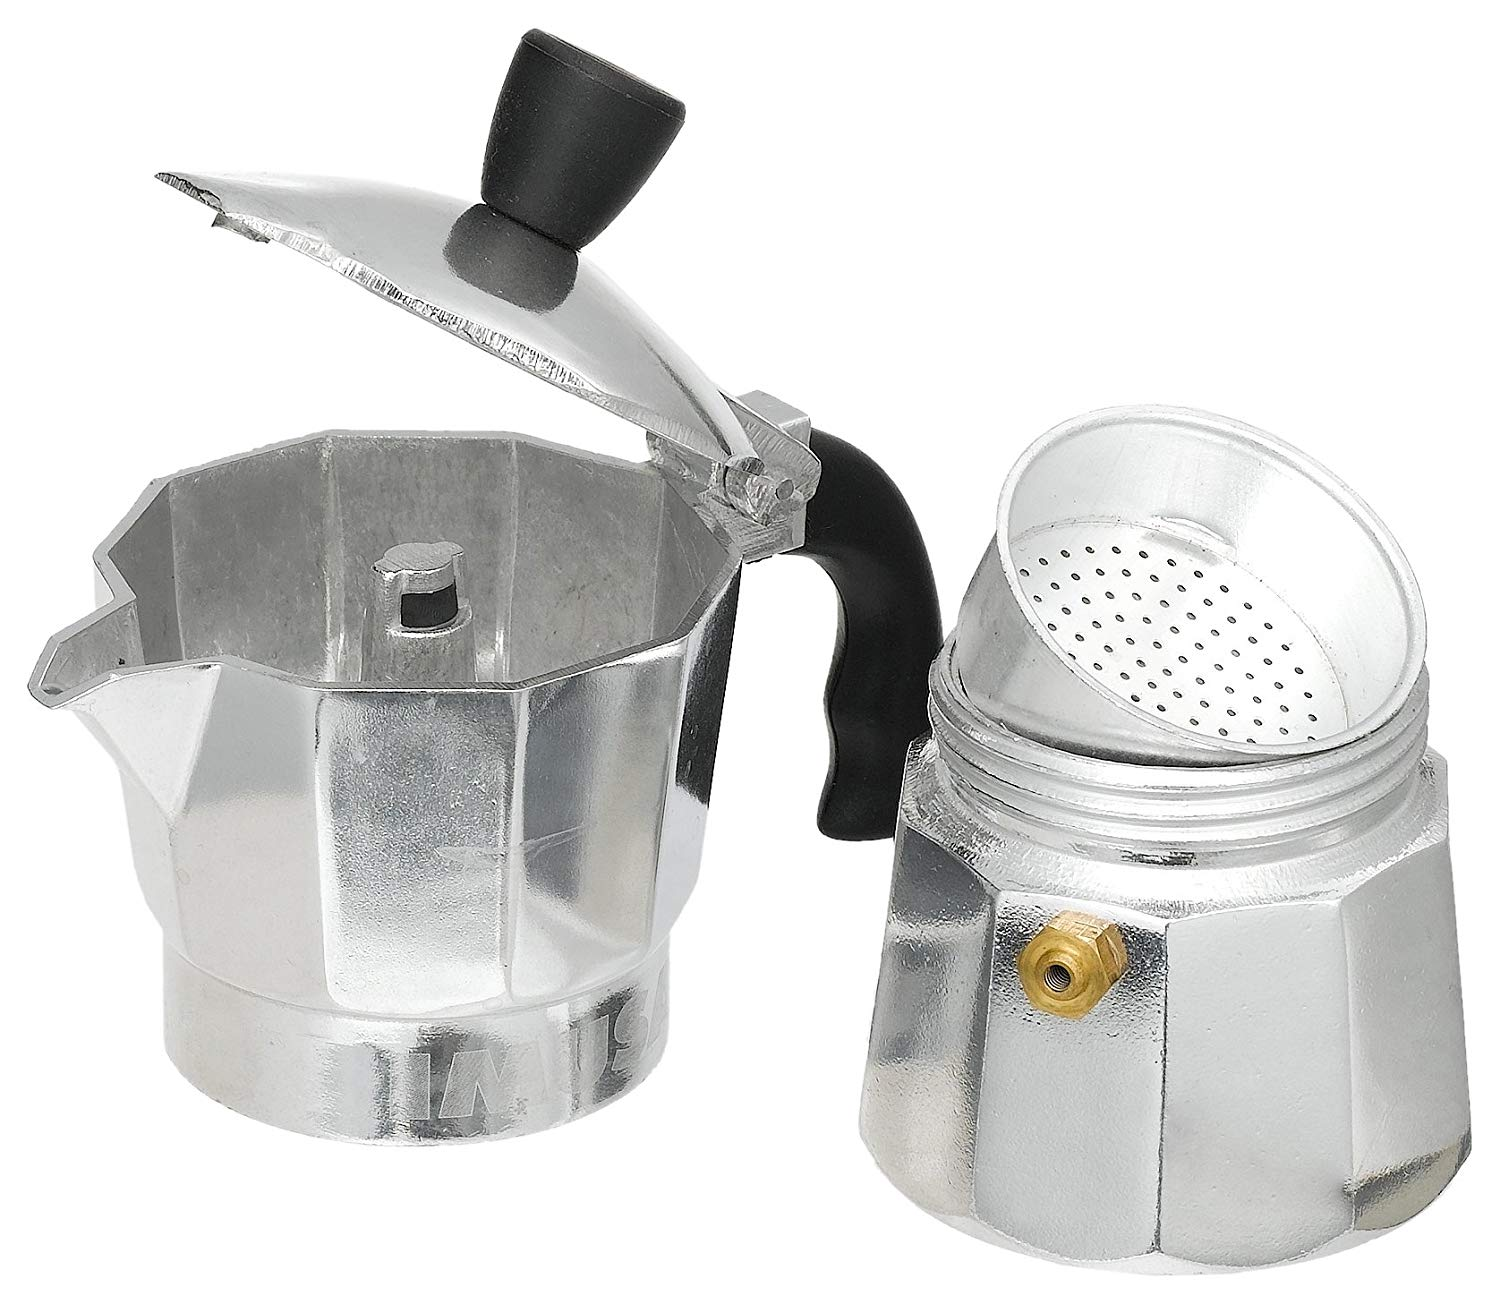 Imusa Cuban Espresso Coffee Maker 6-cup Bundle with a Set of White Espresso Cups 3.5 Ounces and Metal Rack Famous Clubs